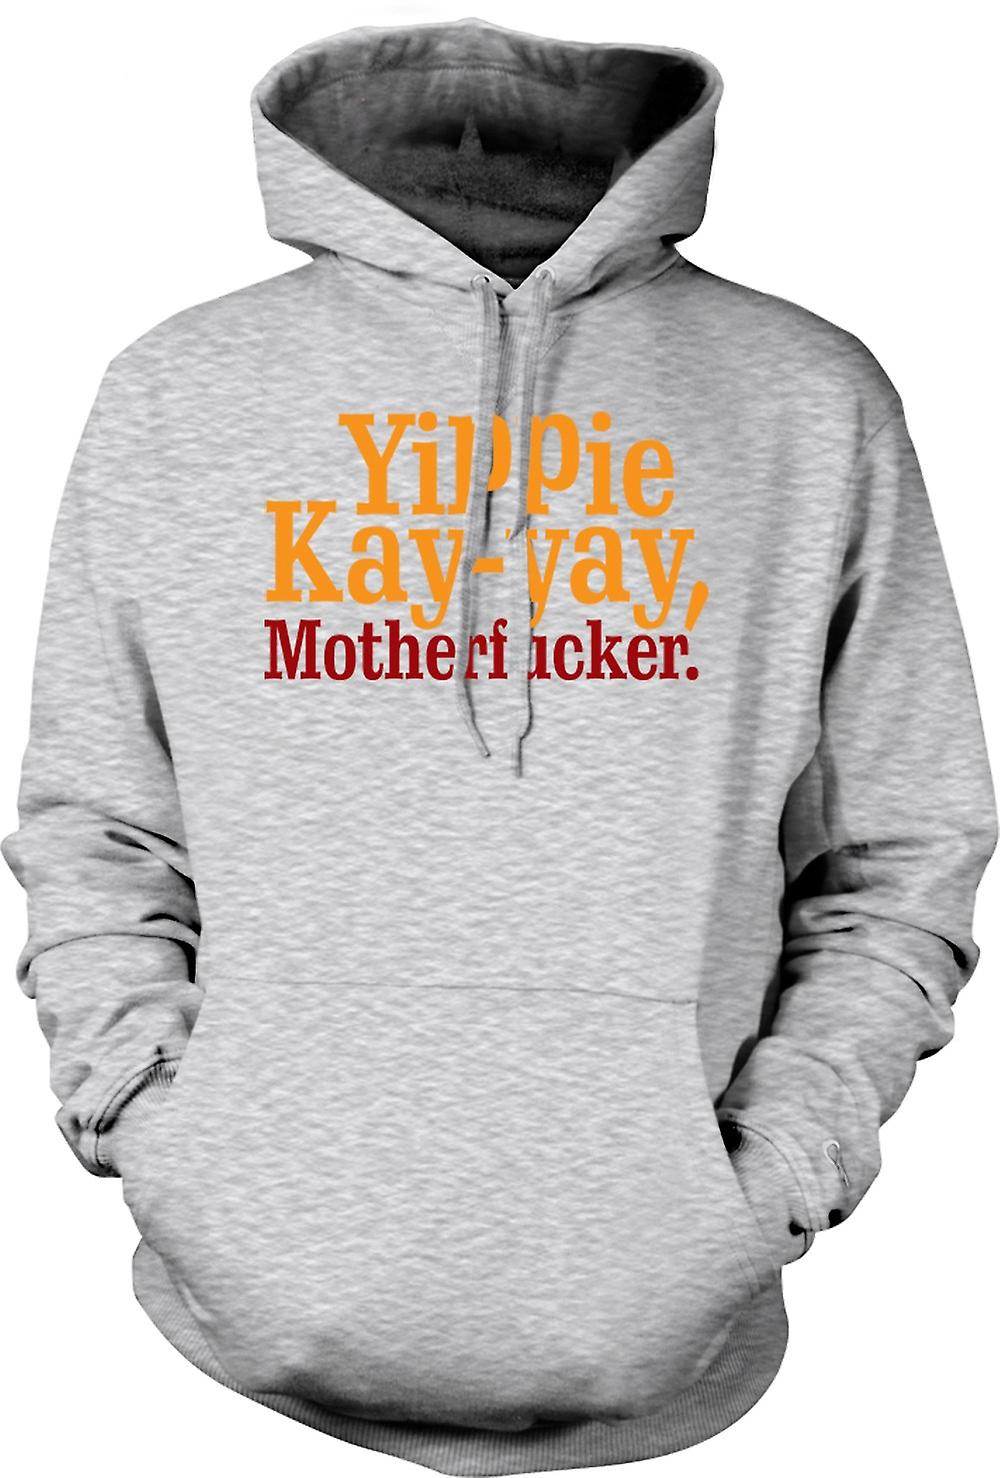 Mens Hoodie - Yippie Kay - Yay, Motherfucker - Funny Quote